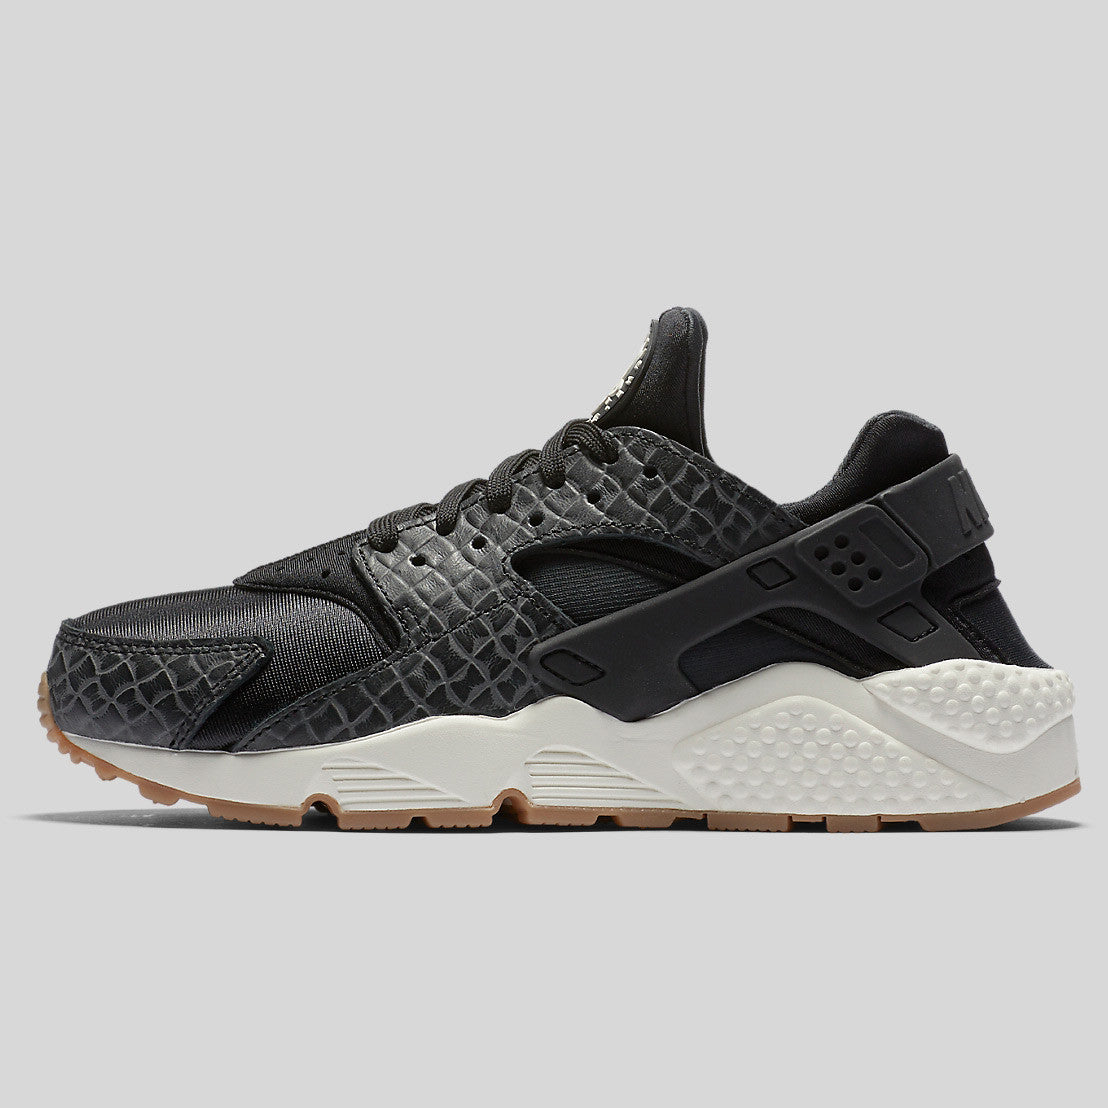 Wmns Air Black Huarache Med Nike Brown Prm Gum Run Sail dxeoCB